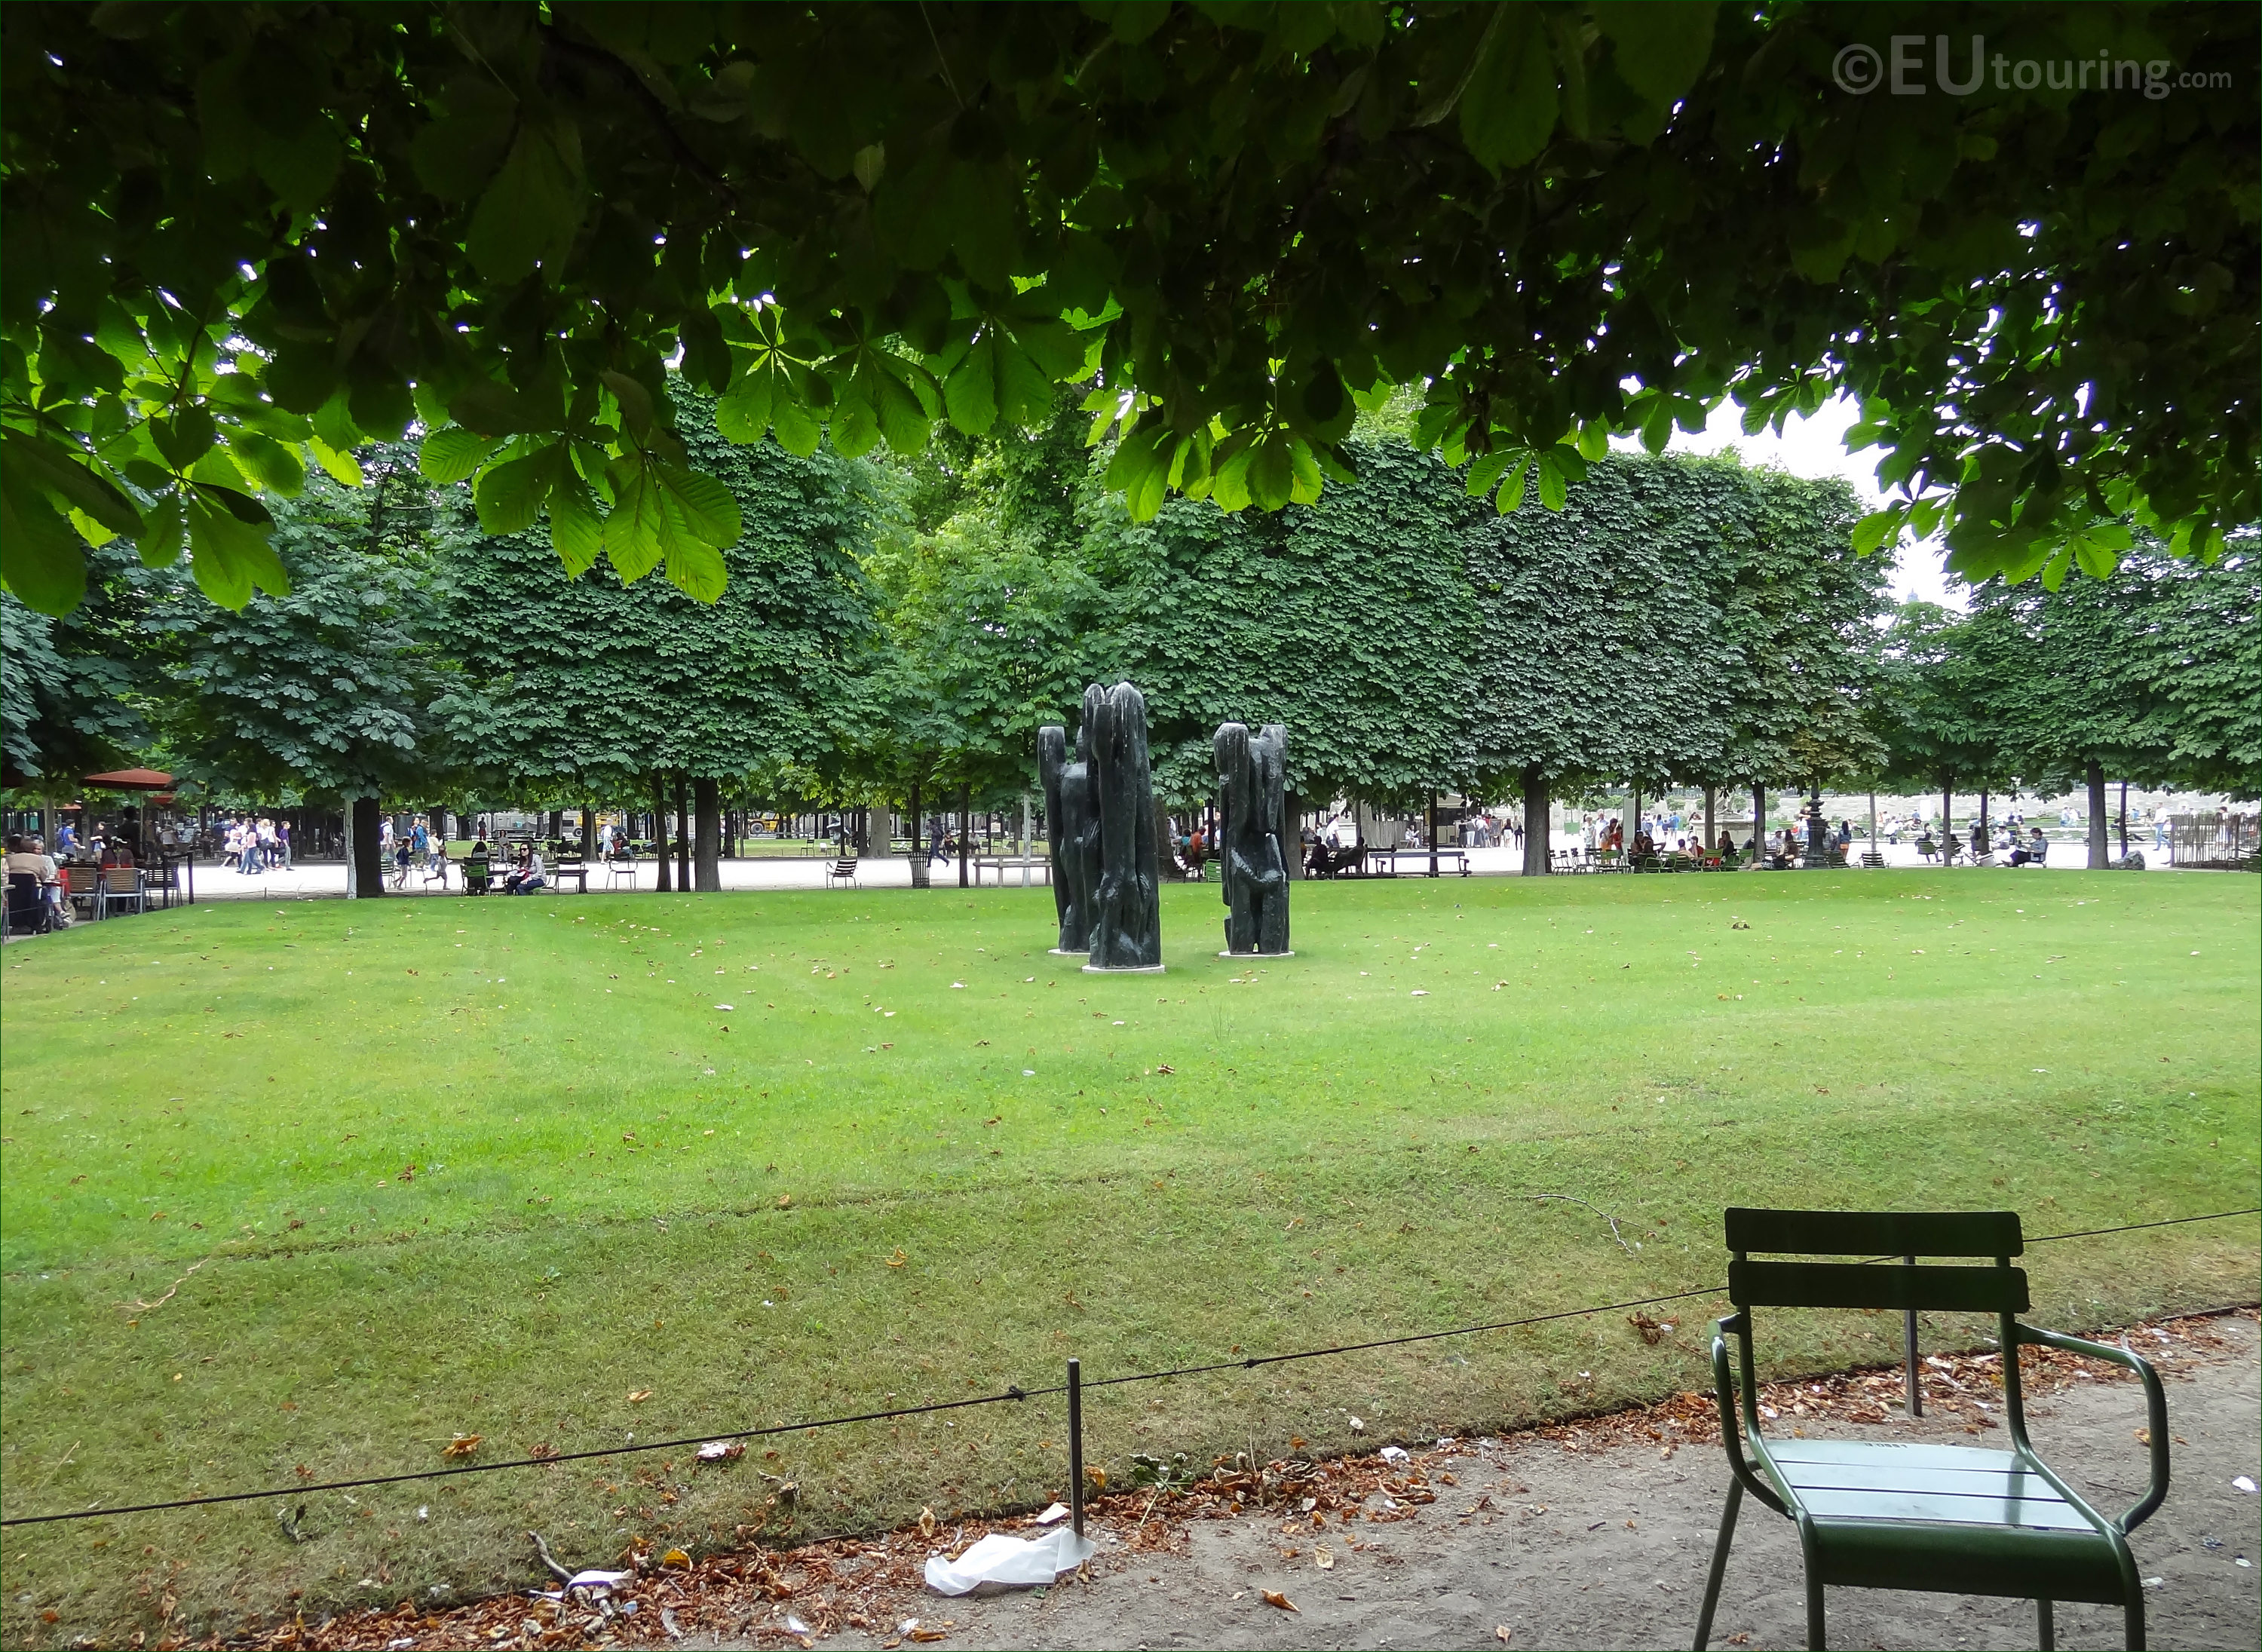 The Personnage III statues in Jardin des Tuileries Page 732